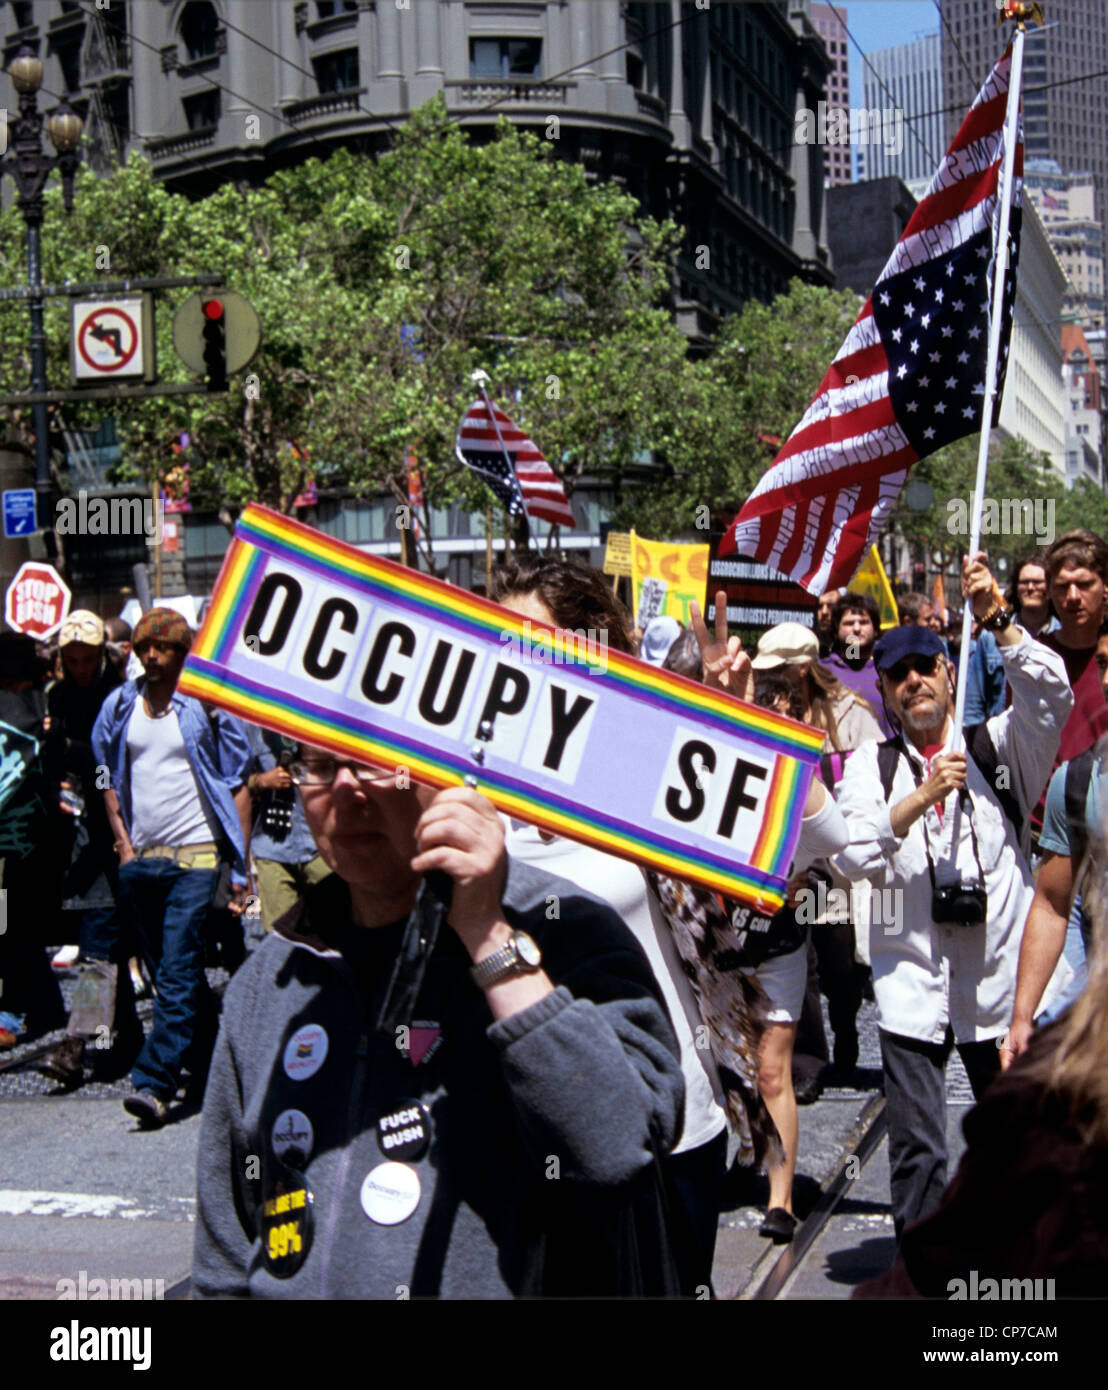 Occupy San Francisco marchers hold signs and upside down American flags protesting on May Day on market street - Stock Image